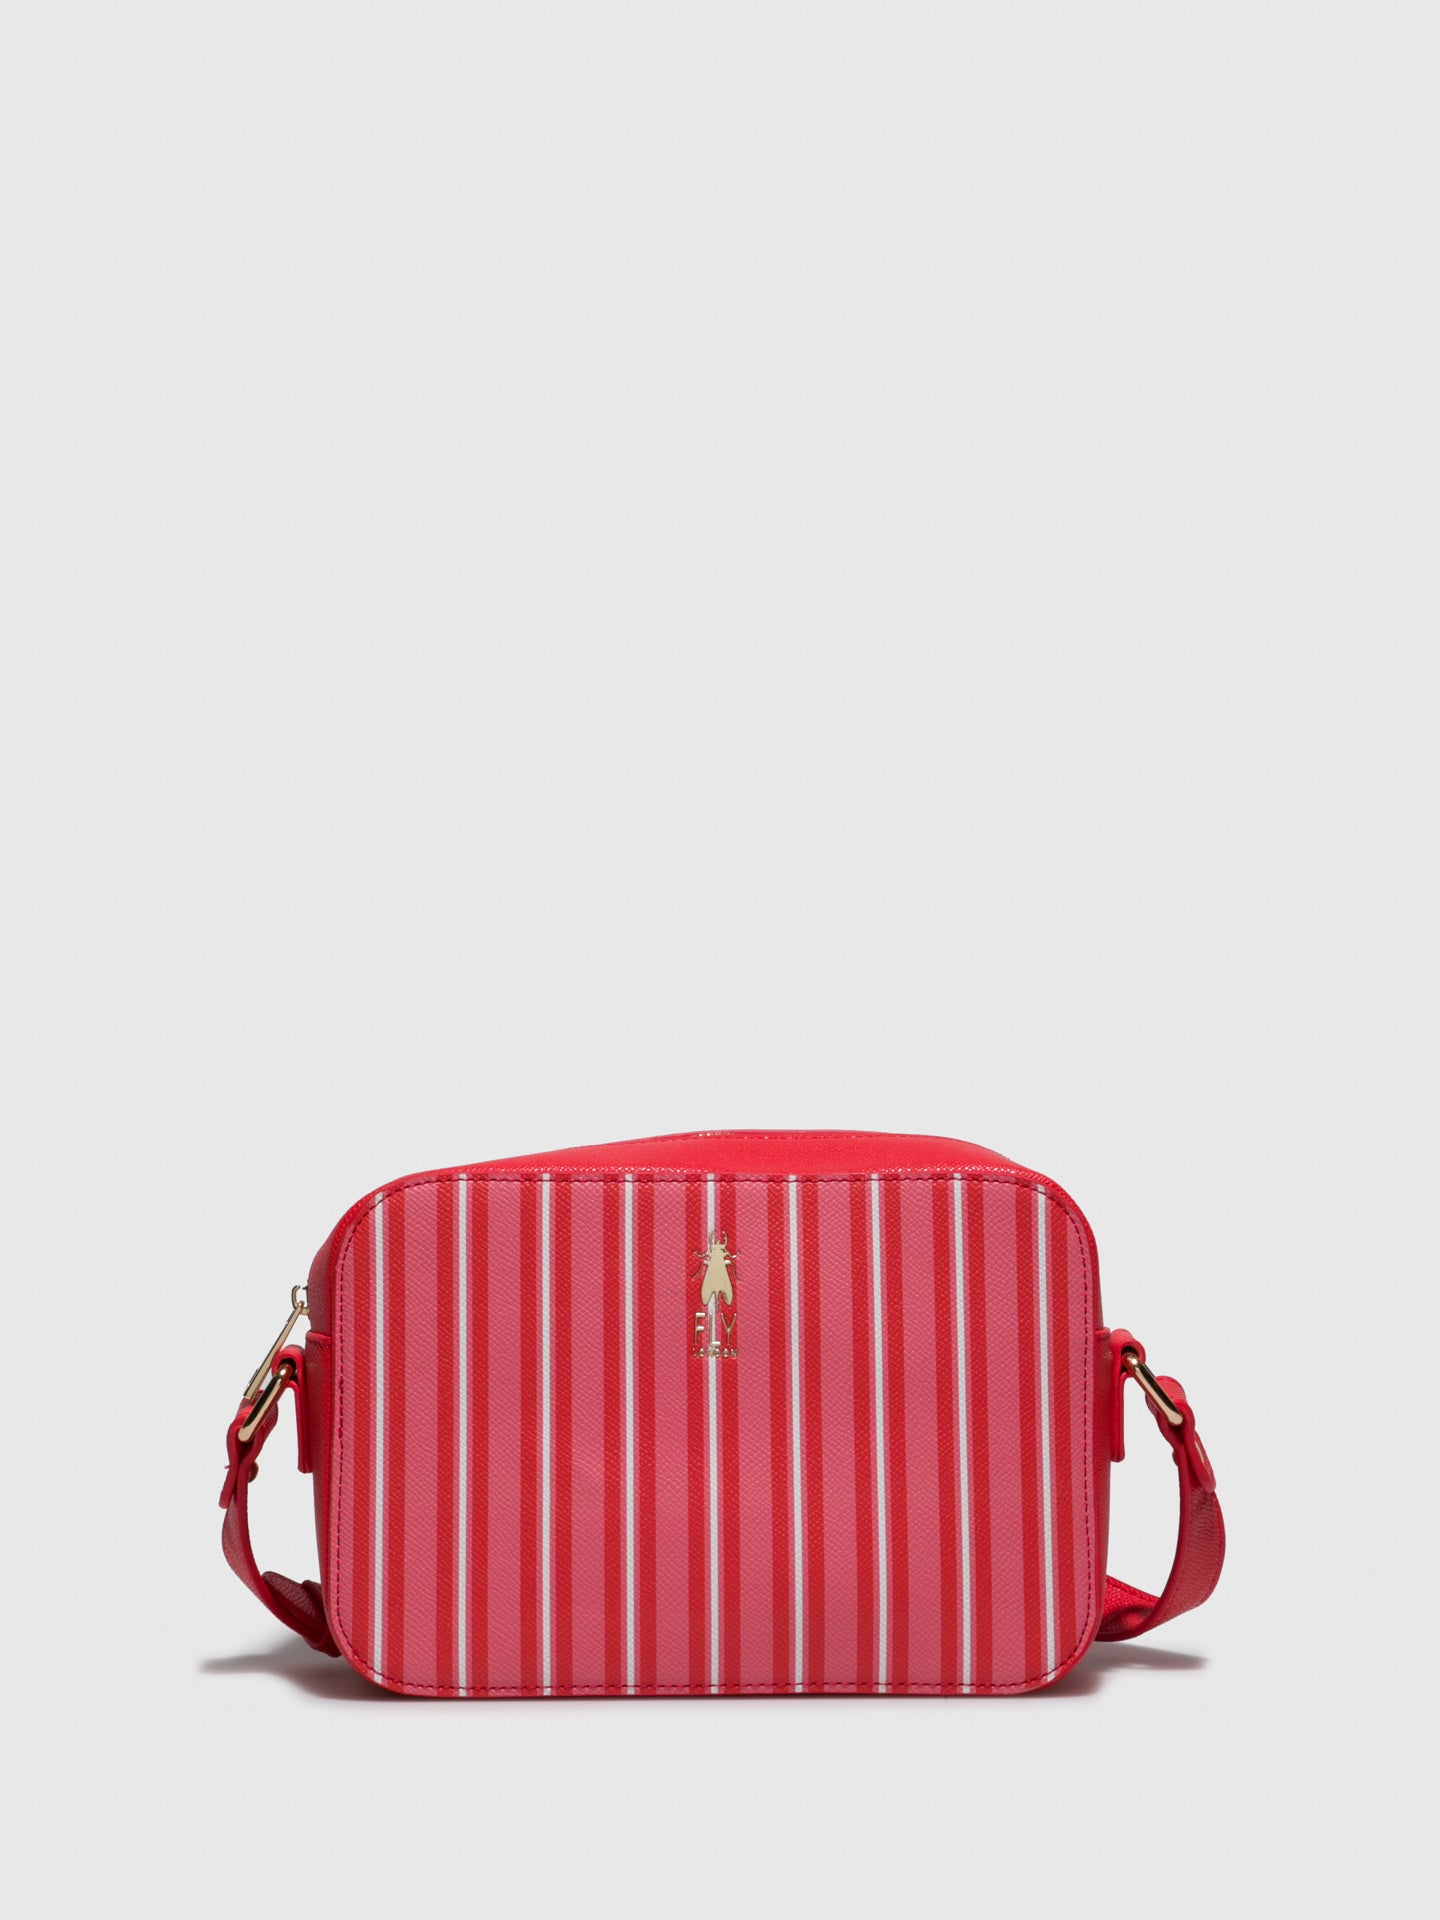 Fly London Red White Crossbody Bag